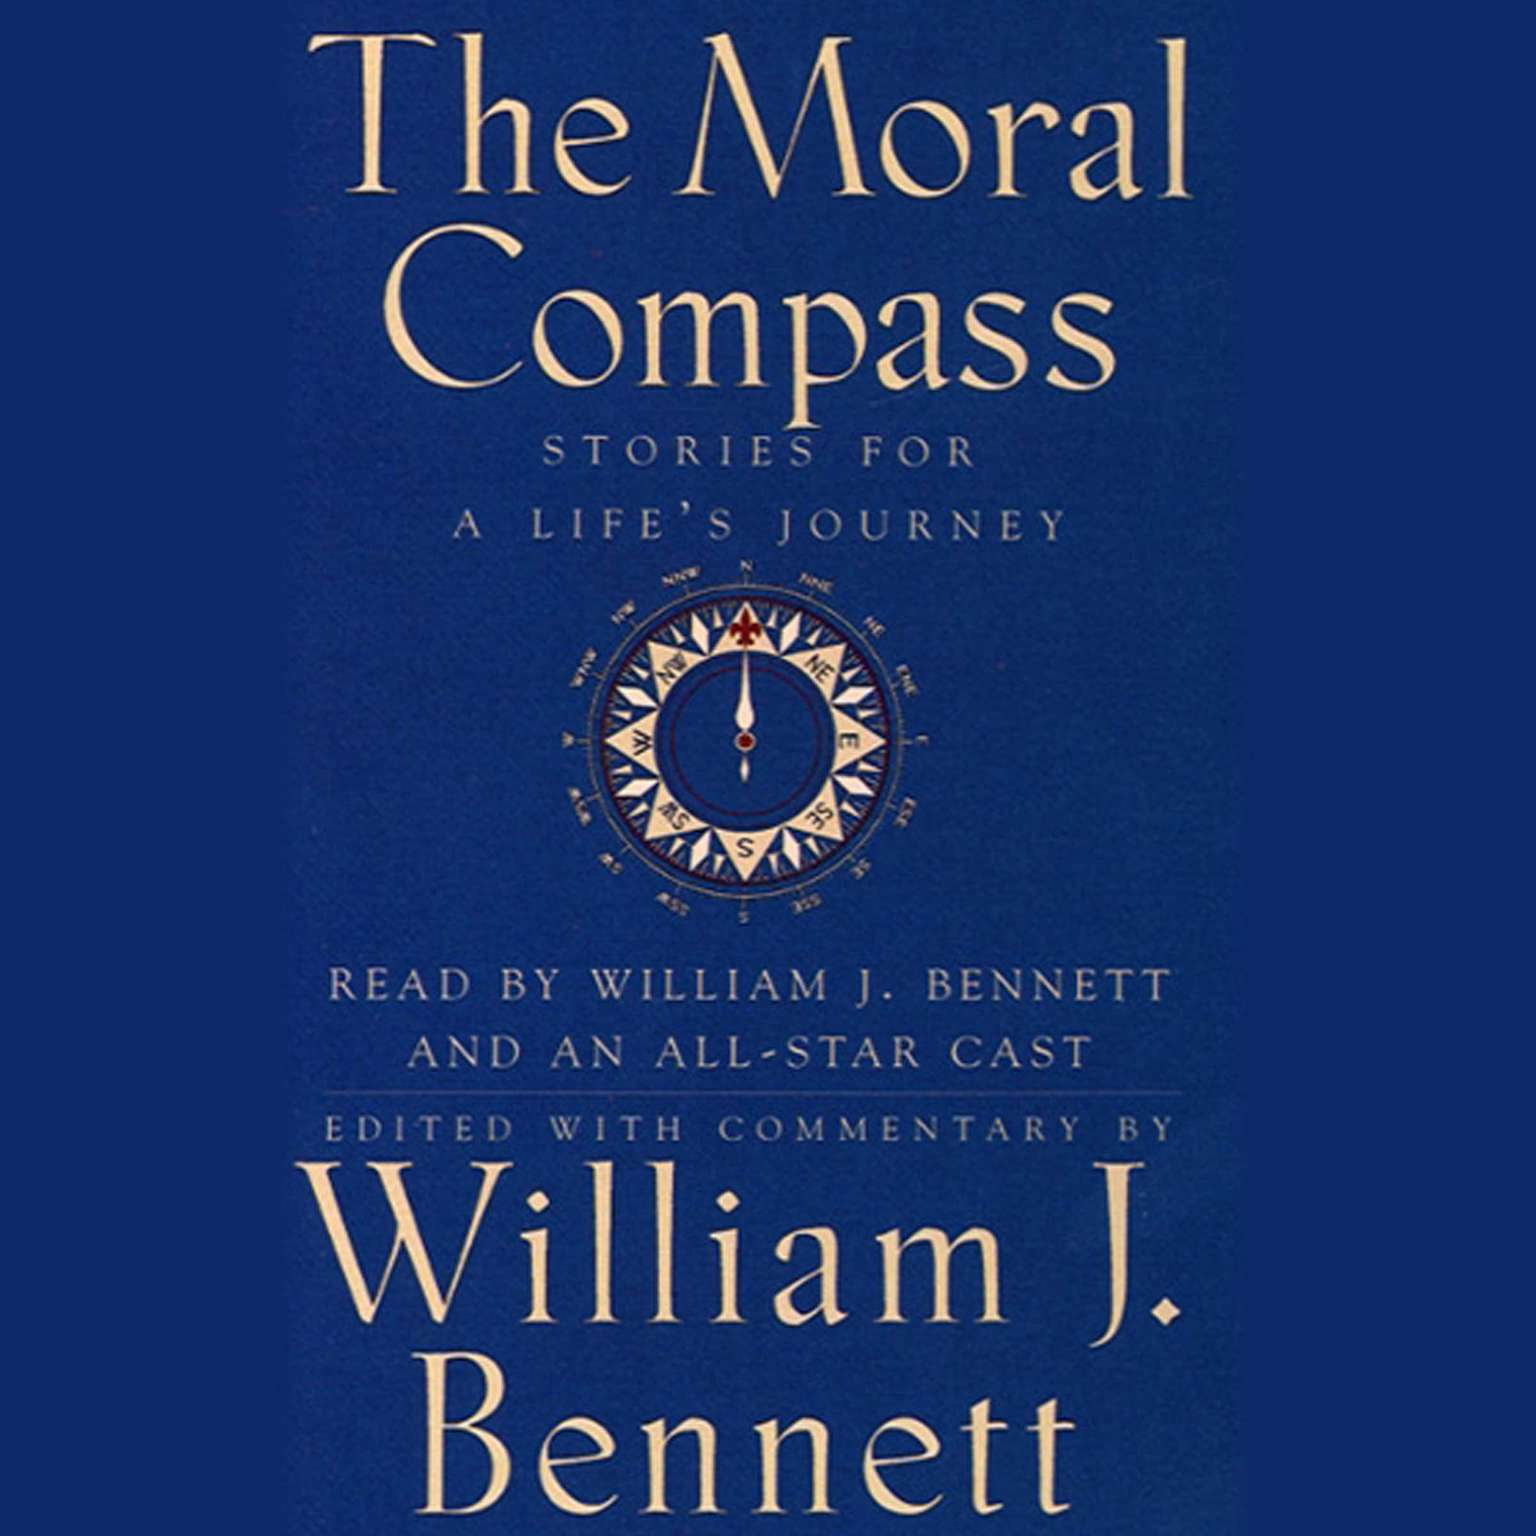 Printable The Moral Compass: Volume One of An Audio Library of Stories for a Life's Journey Audiobook Cover Art